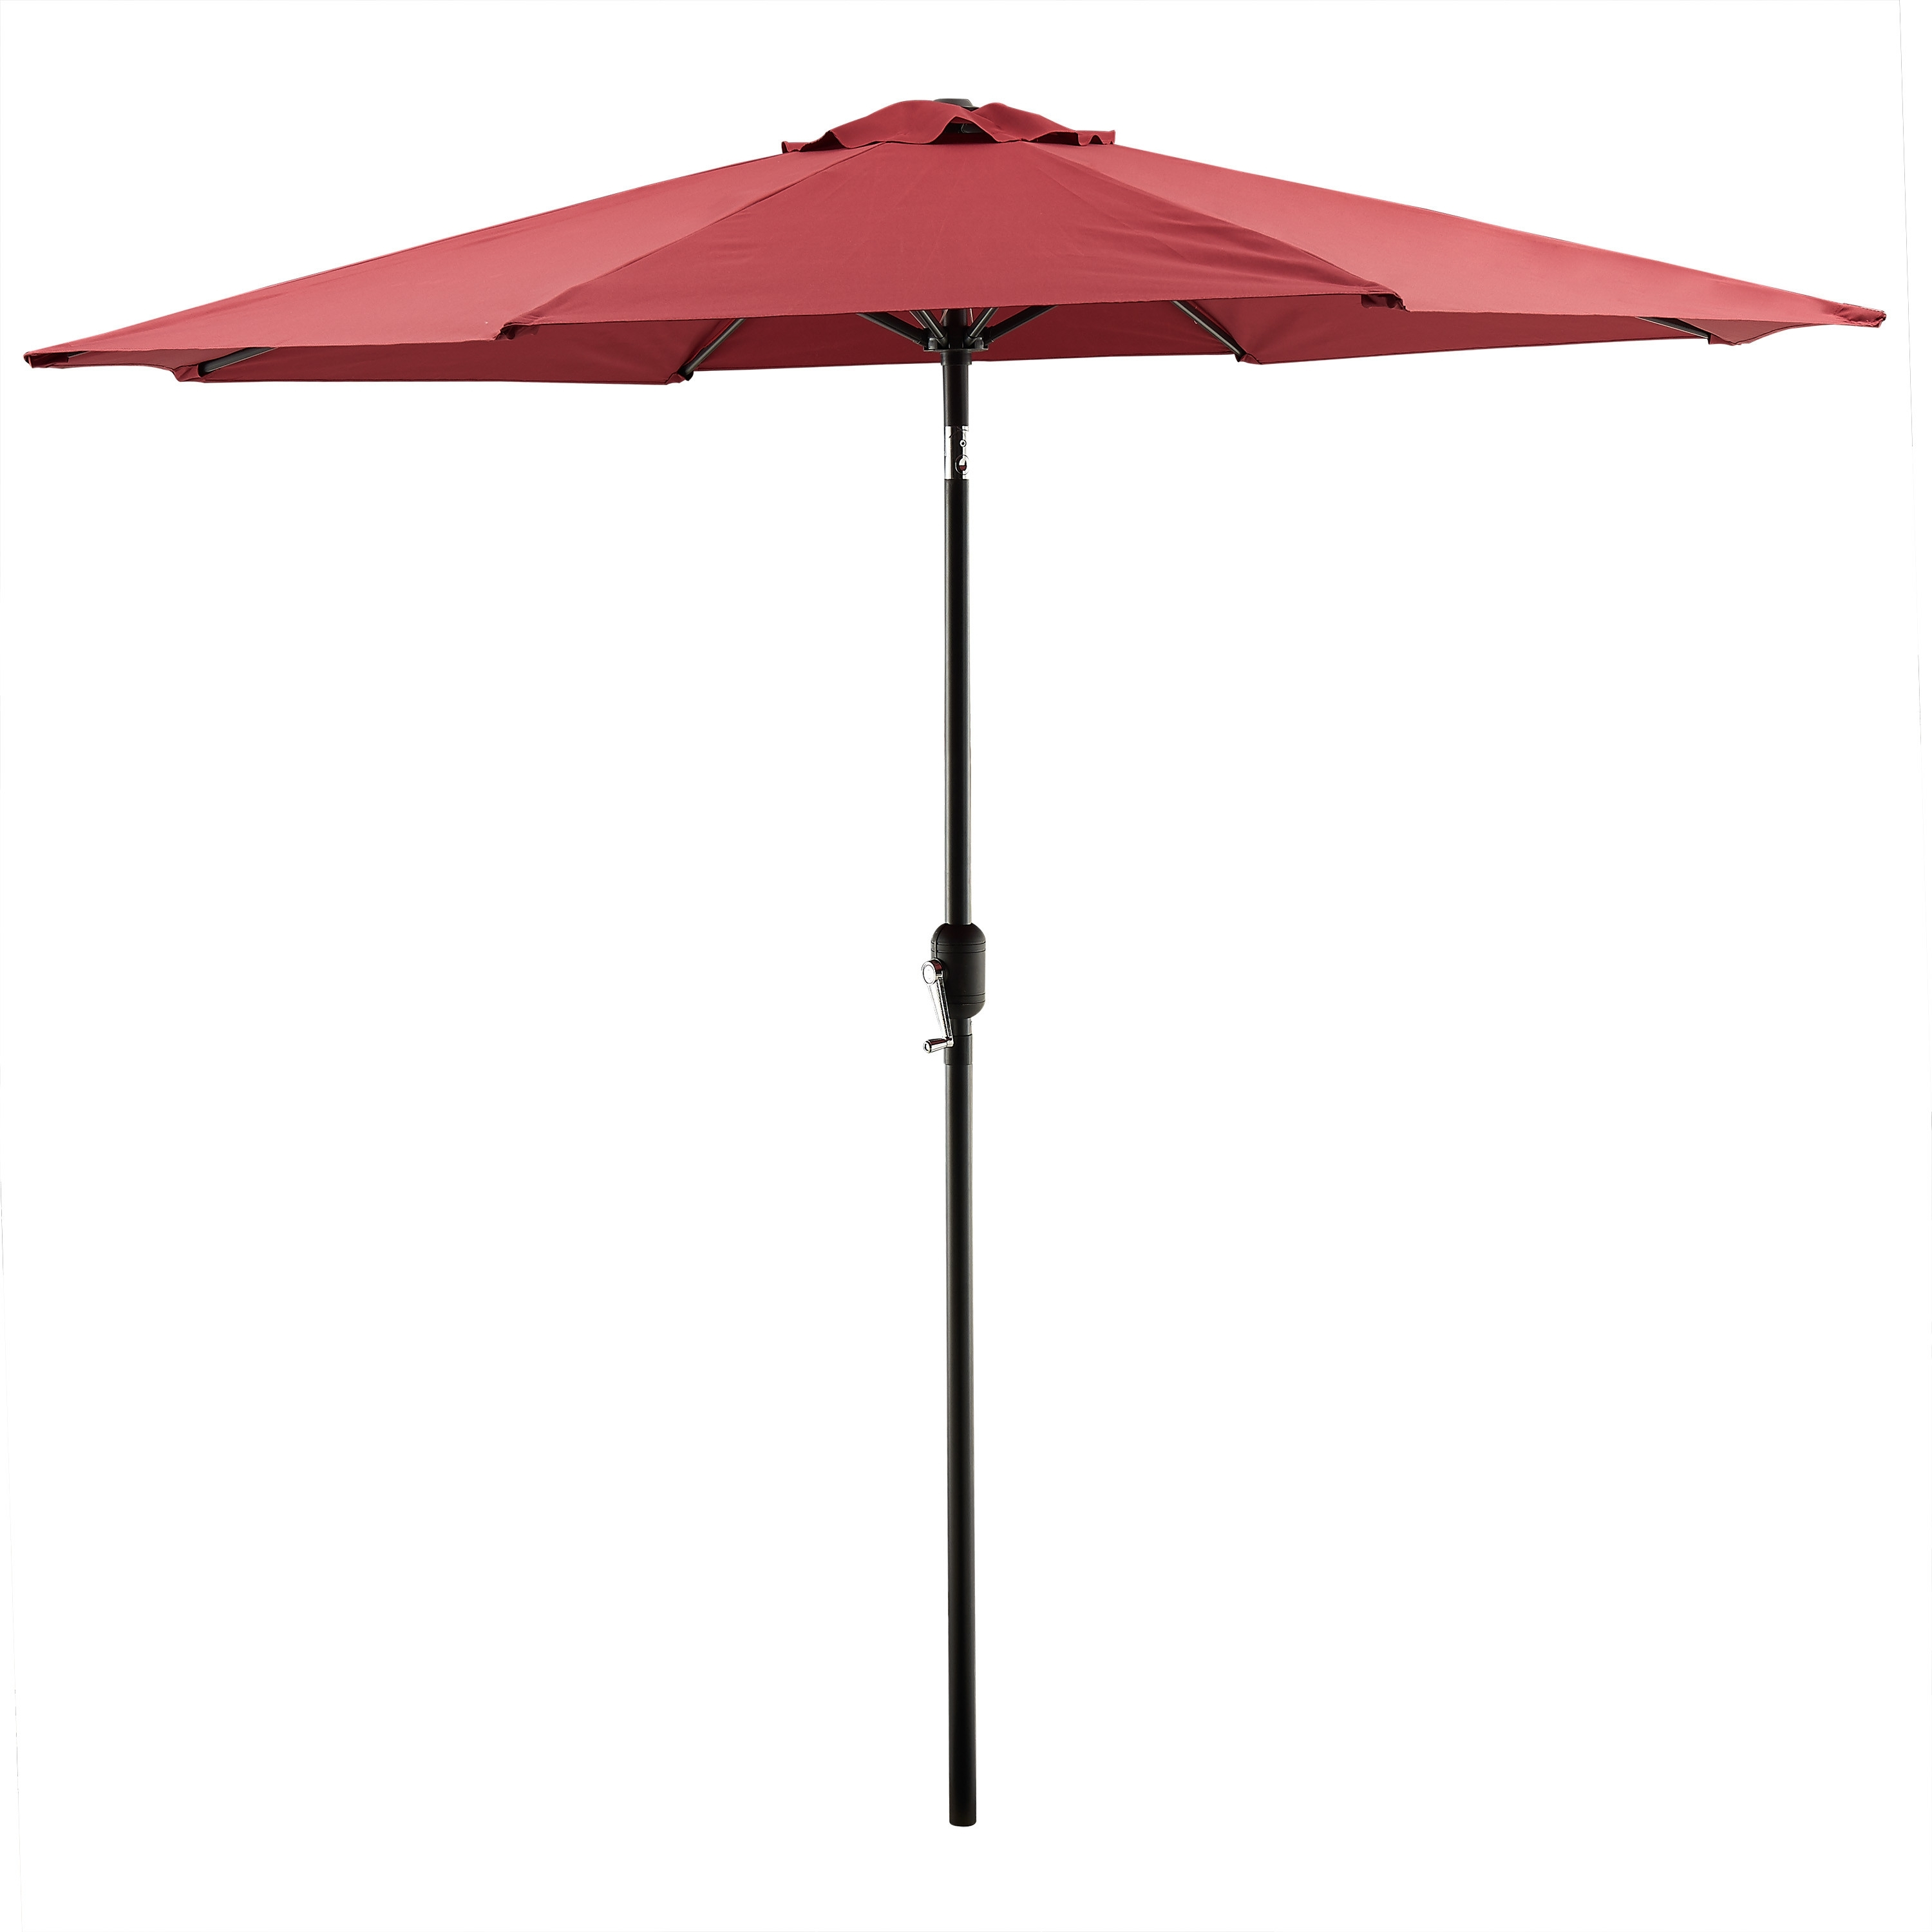 Wayfair Patio Umbrellas With Most Current 9 Market Umbrelladhi.dhi 9' Market Umbrella Reviews Wayfair (View 18 of 20)